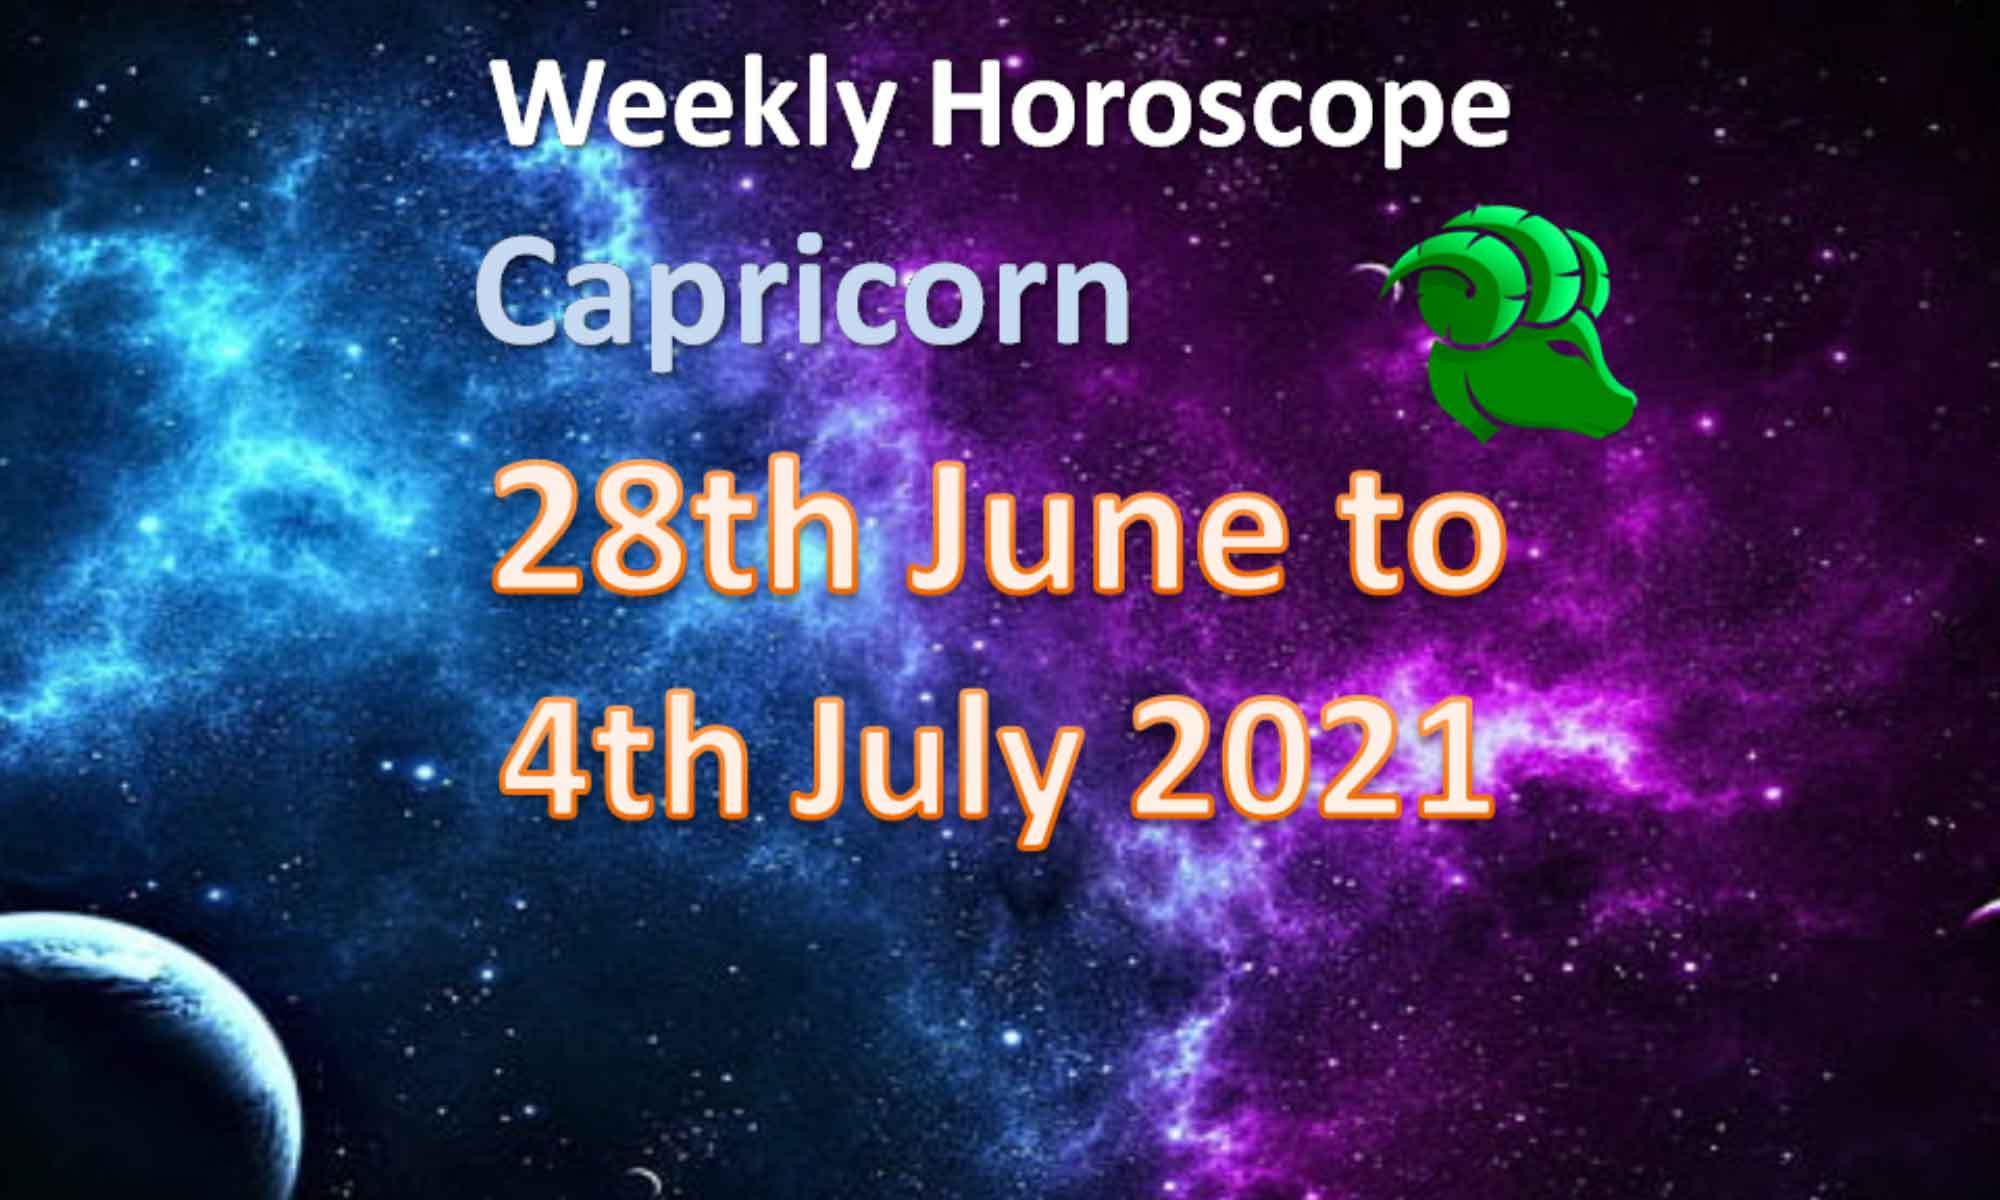 capricorn weekly horoscope for 28th june to 4th july 2021